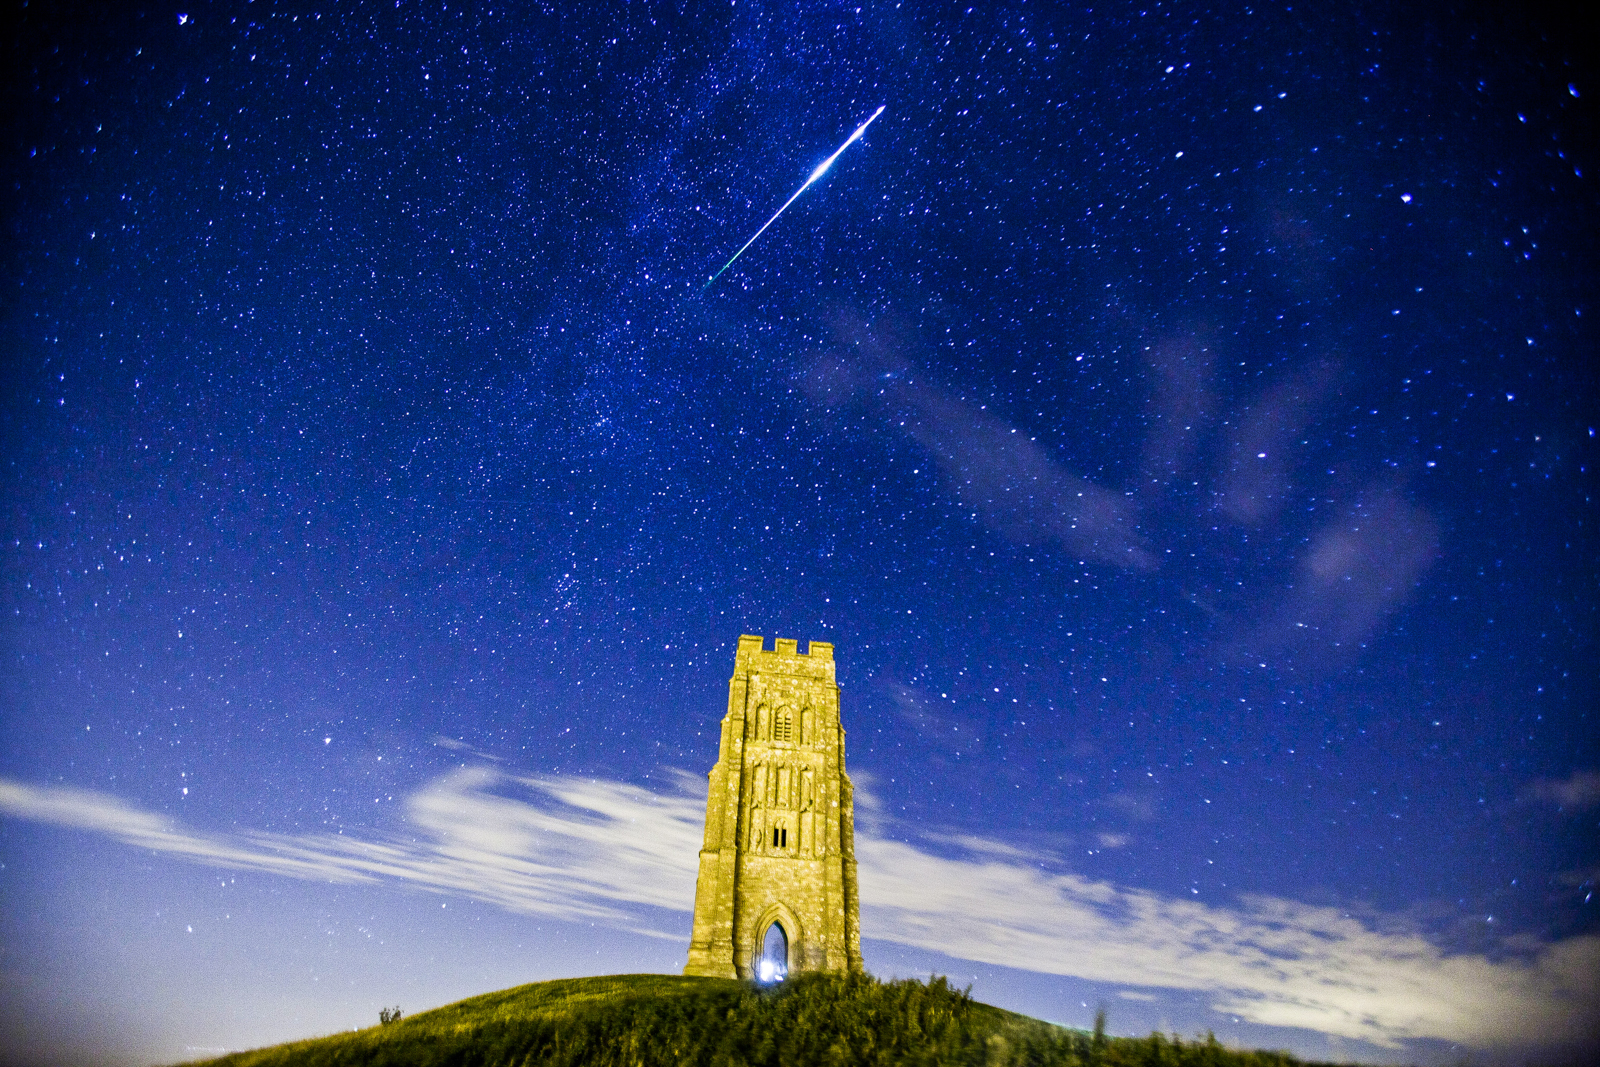 Perseid Meteor over Glastonbury Tor